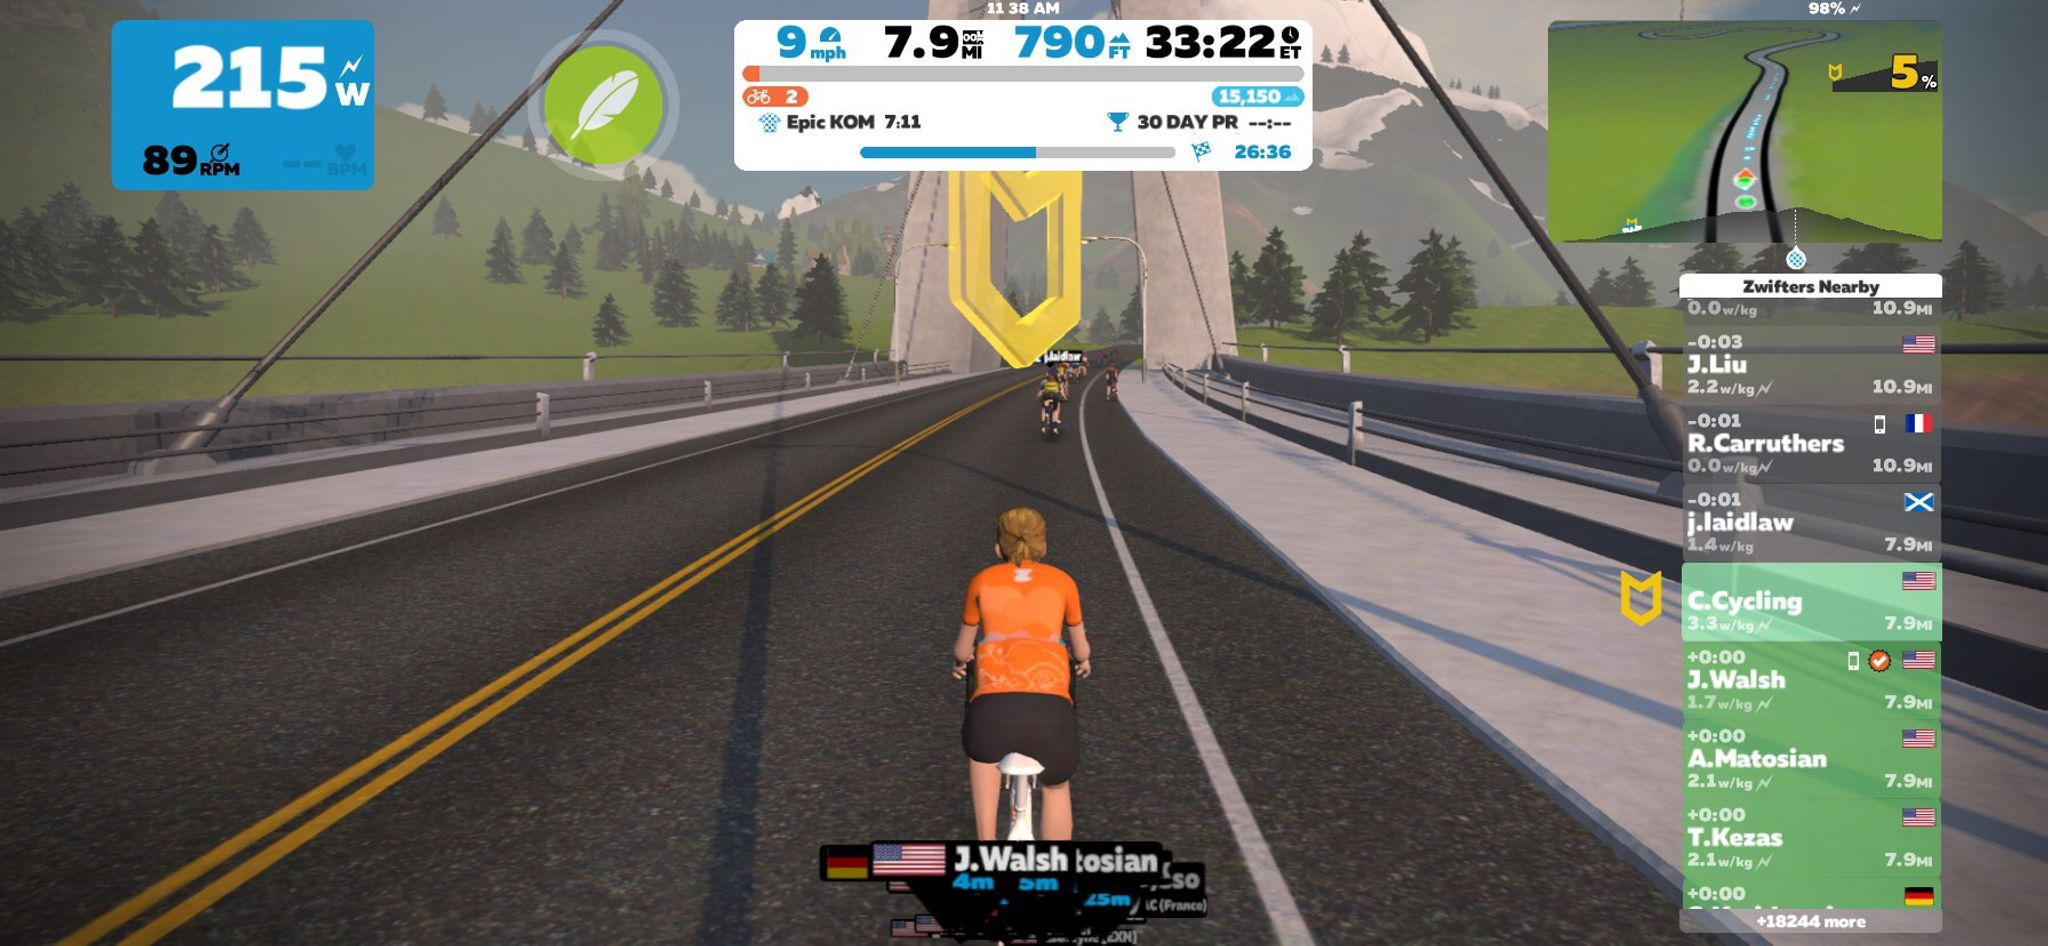 CAF Cycling Club Zwift Ride